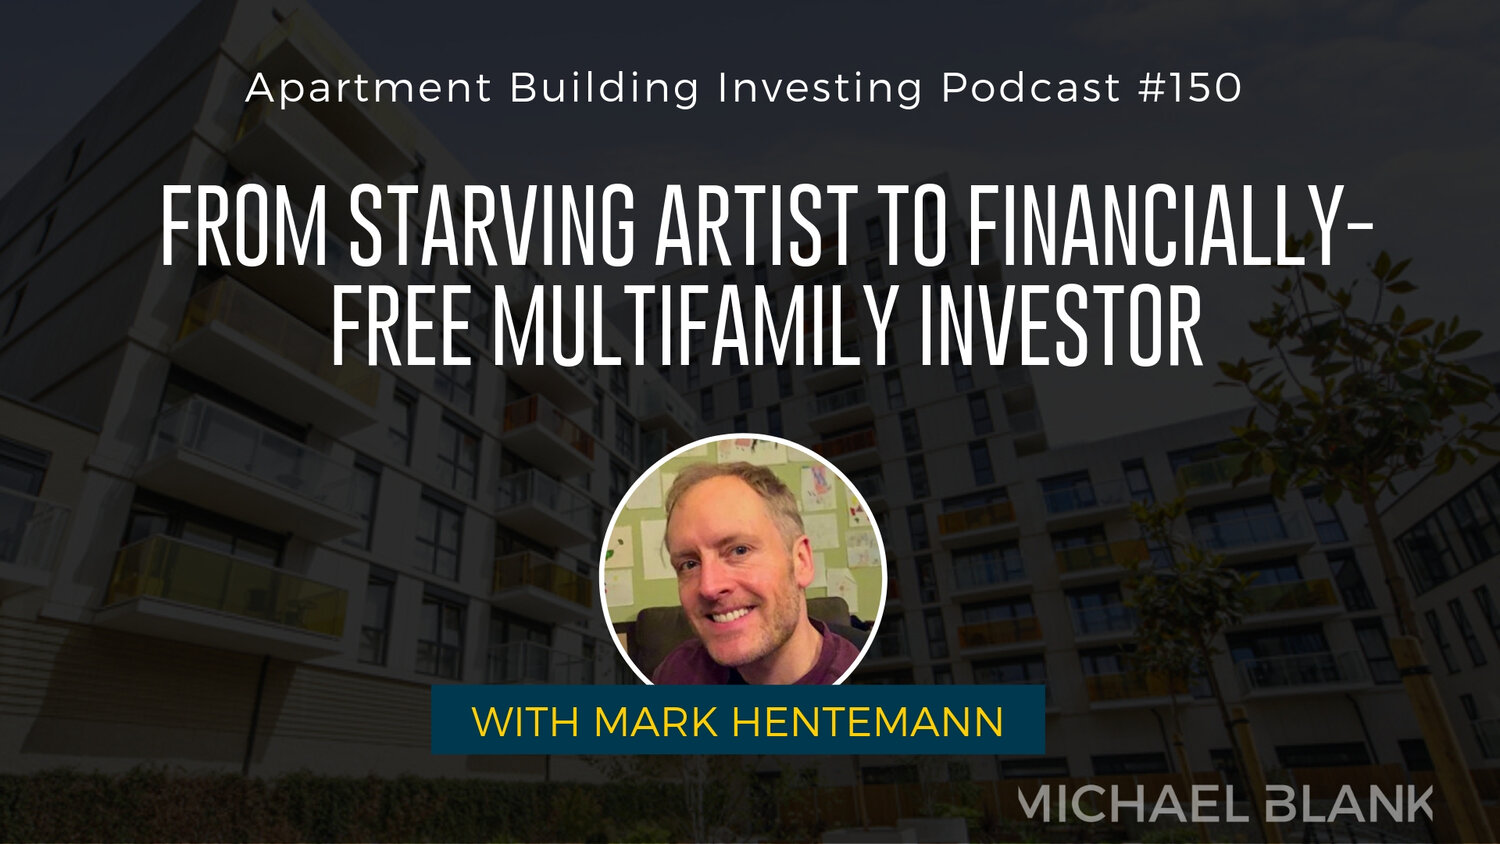 MB 150: From starving artist to financially-free multifamily investor - Mark joins me to explain how a desire for financial security led him to invest in a duplex soon after his move to LA. He describes the moment when he finally understood the power of real estate and speaks to the advantages of house hacking as a strategy to get started.